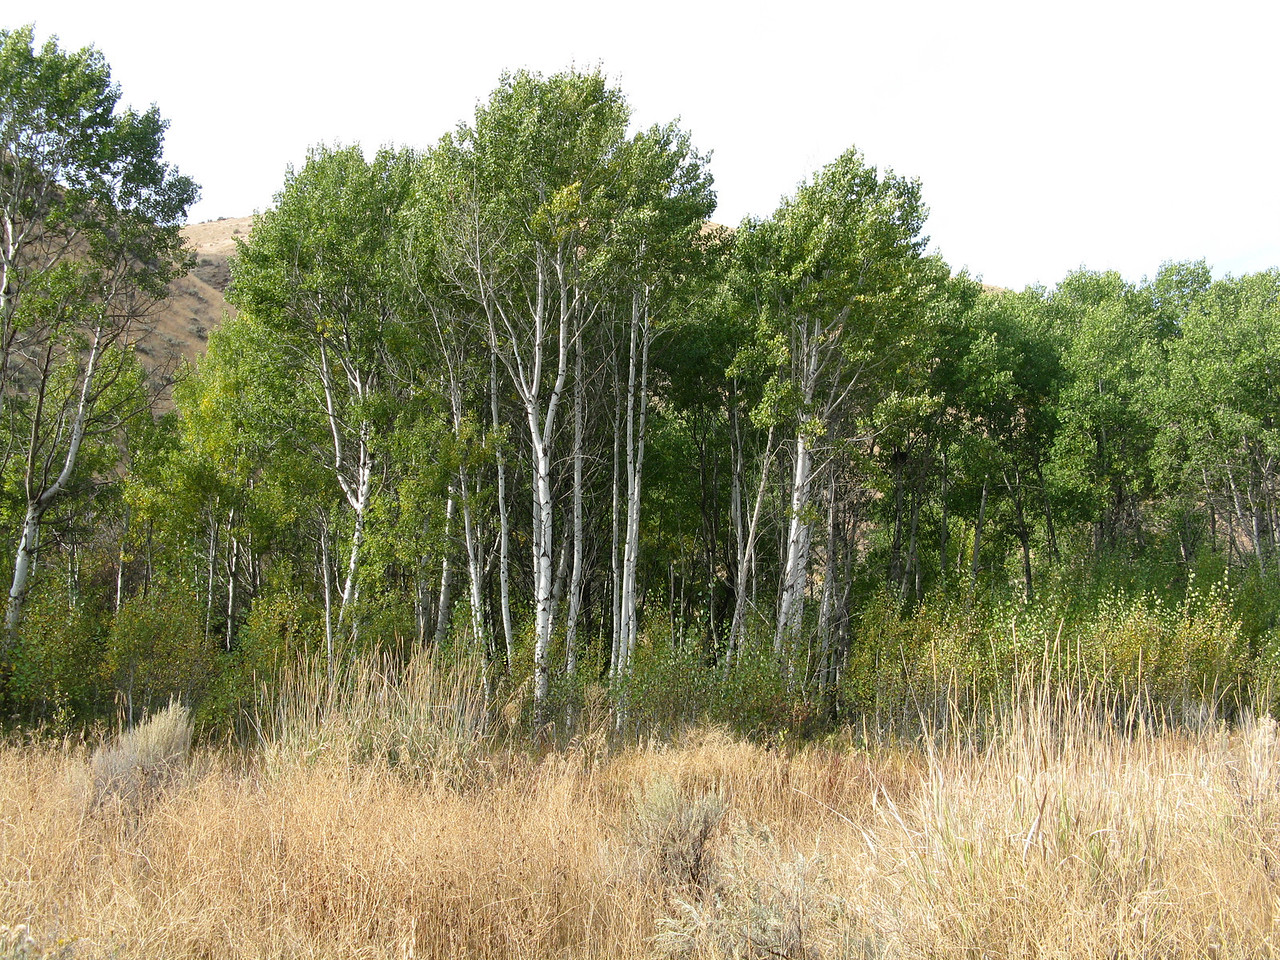 One of many aspen groves along the trail.